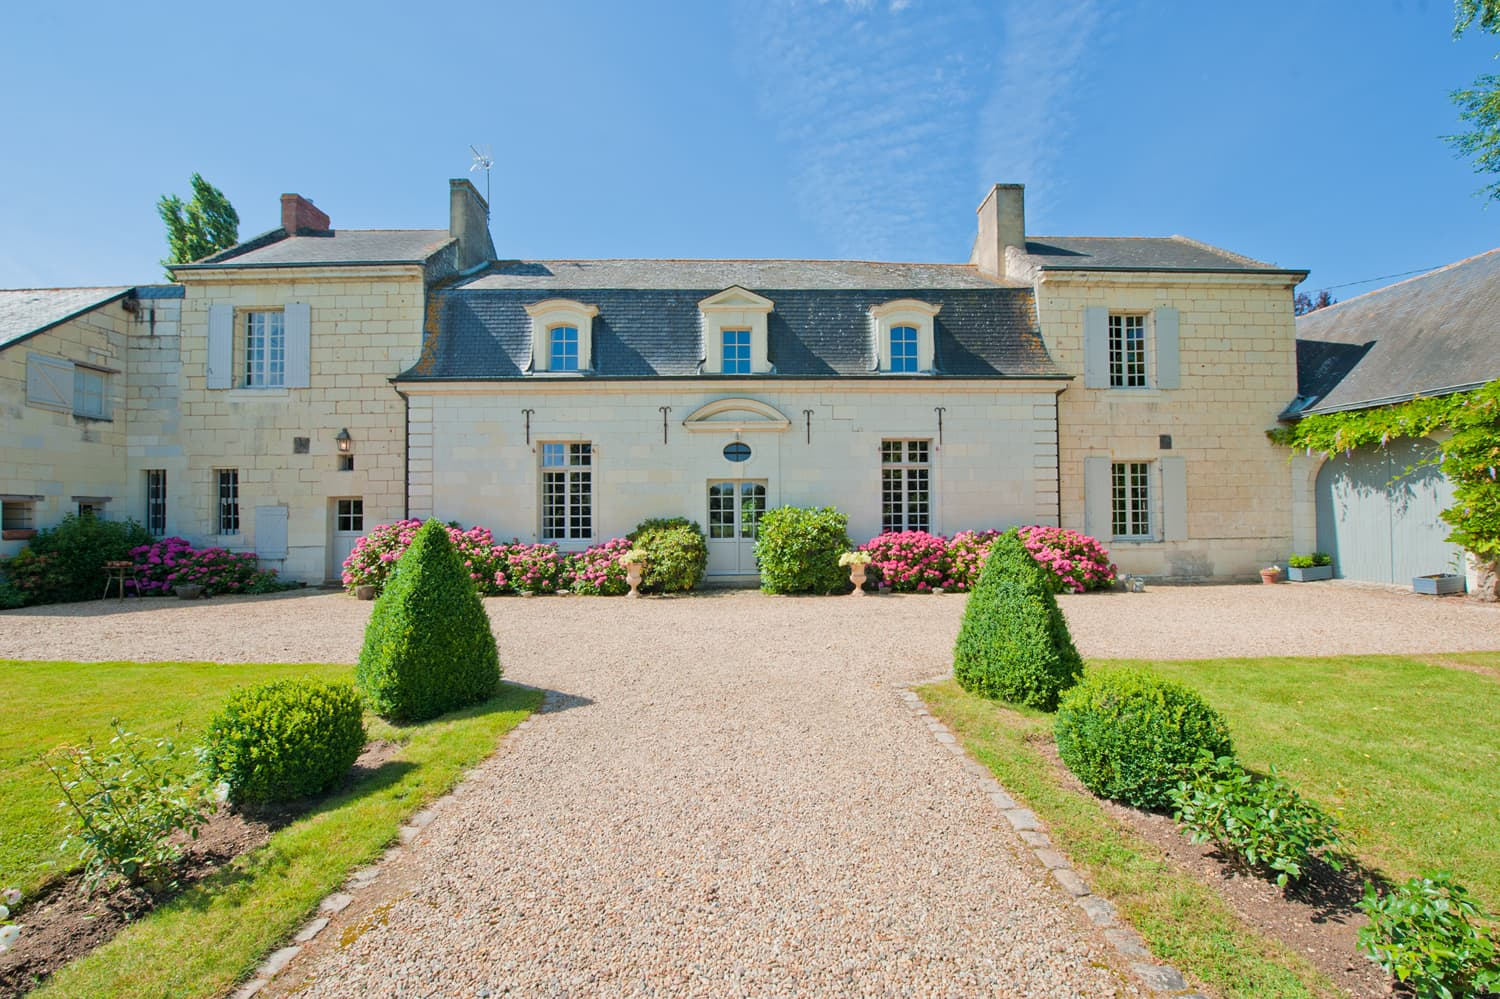 Vacation accommodation with heated pool and garden in the Loire Valley | Manoir d'Anjou